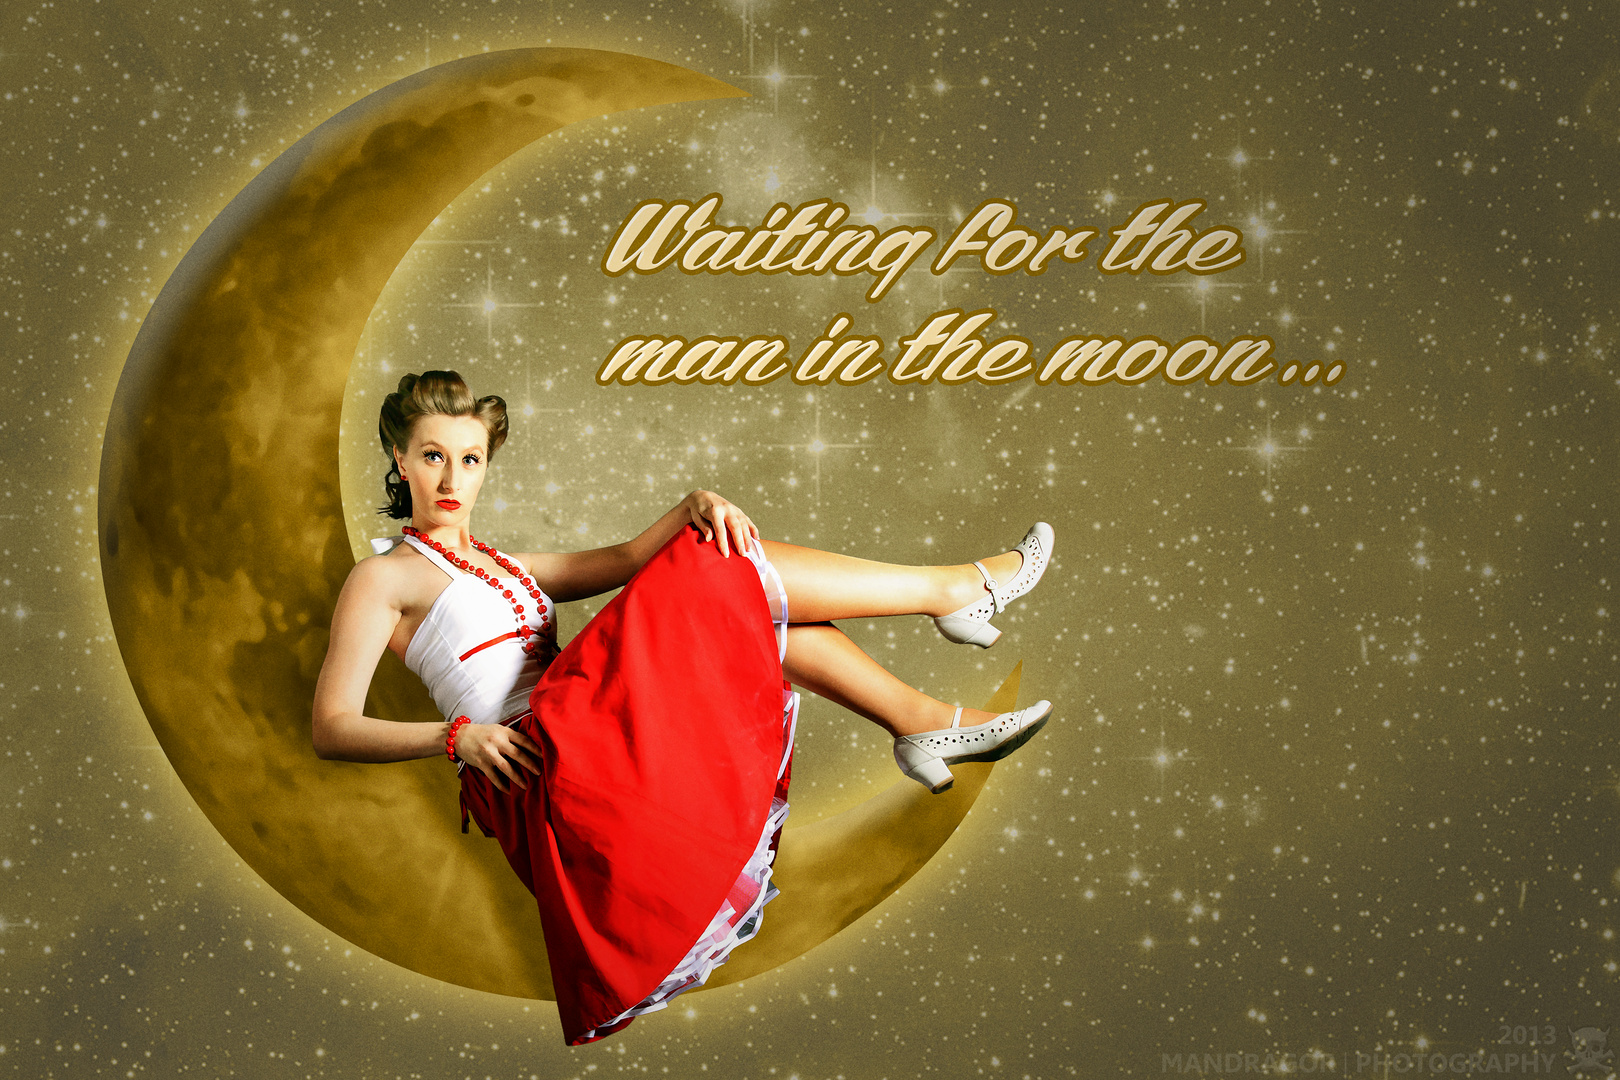 Waiting for the man in the moon... (2)